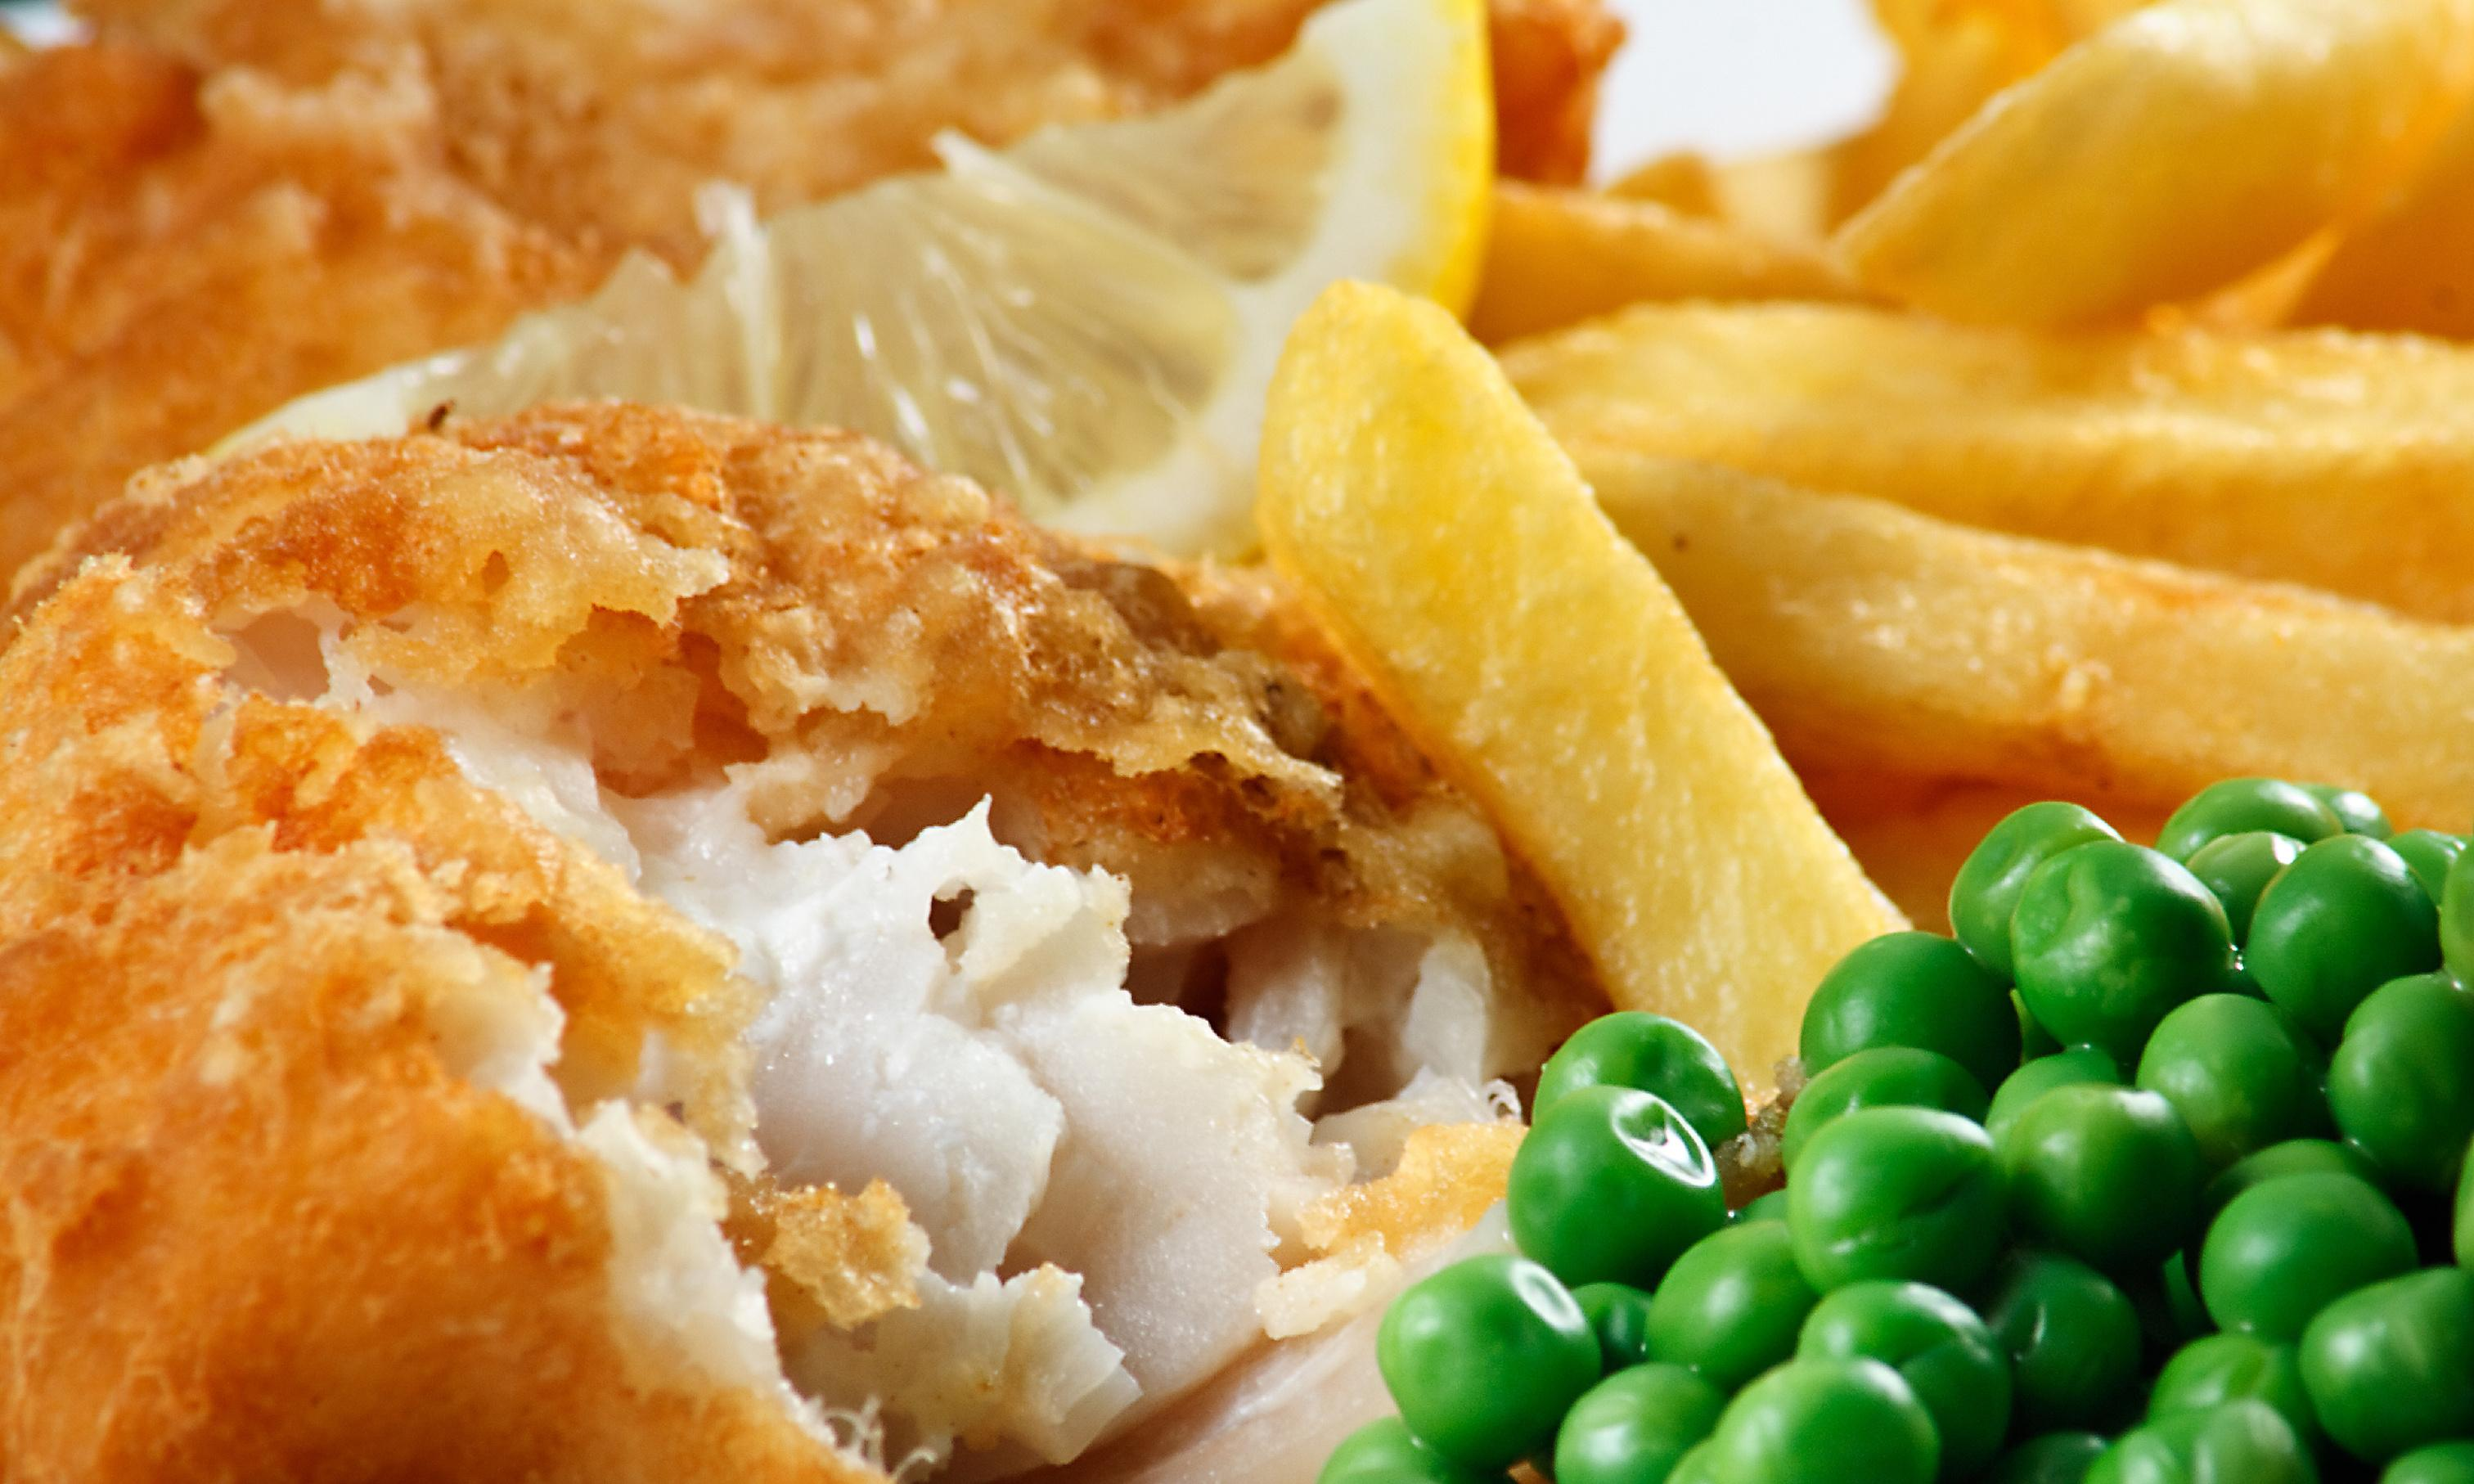 Shoppers told to avoid North Sea cod to sustain fish stocks